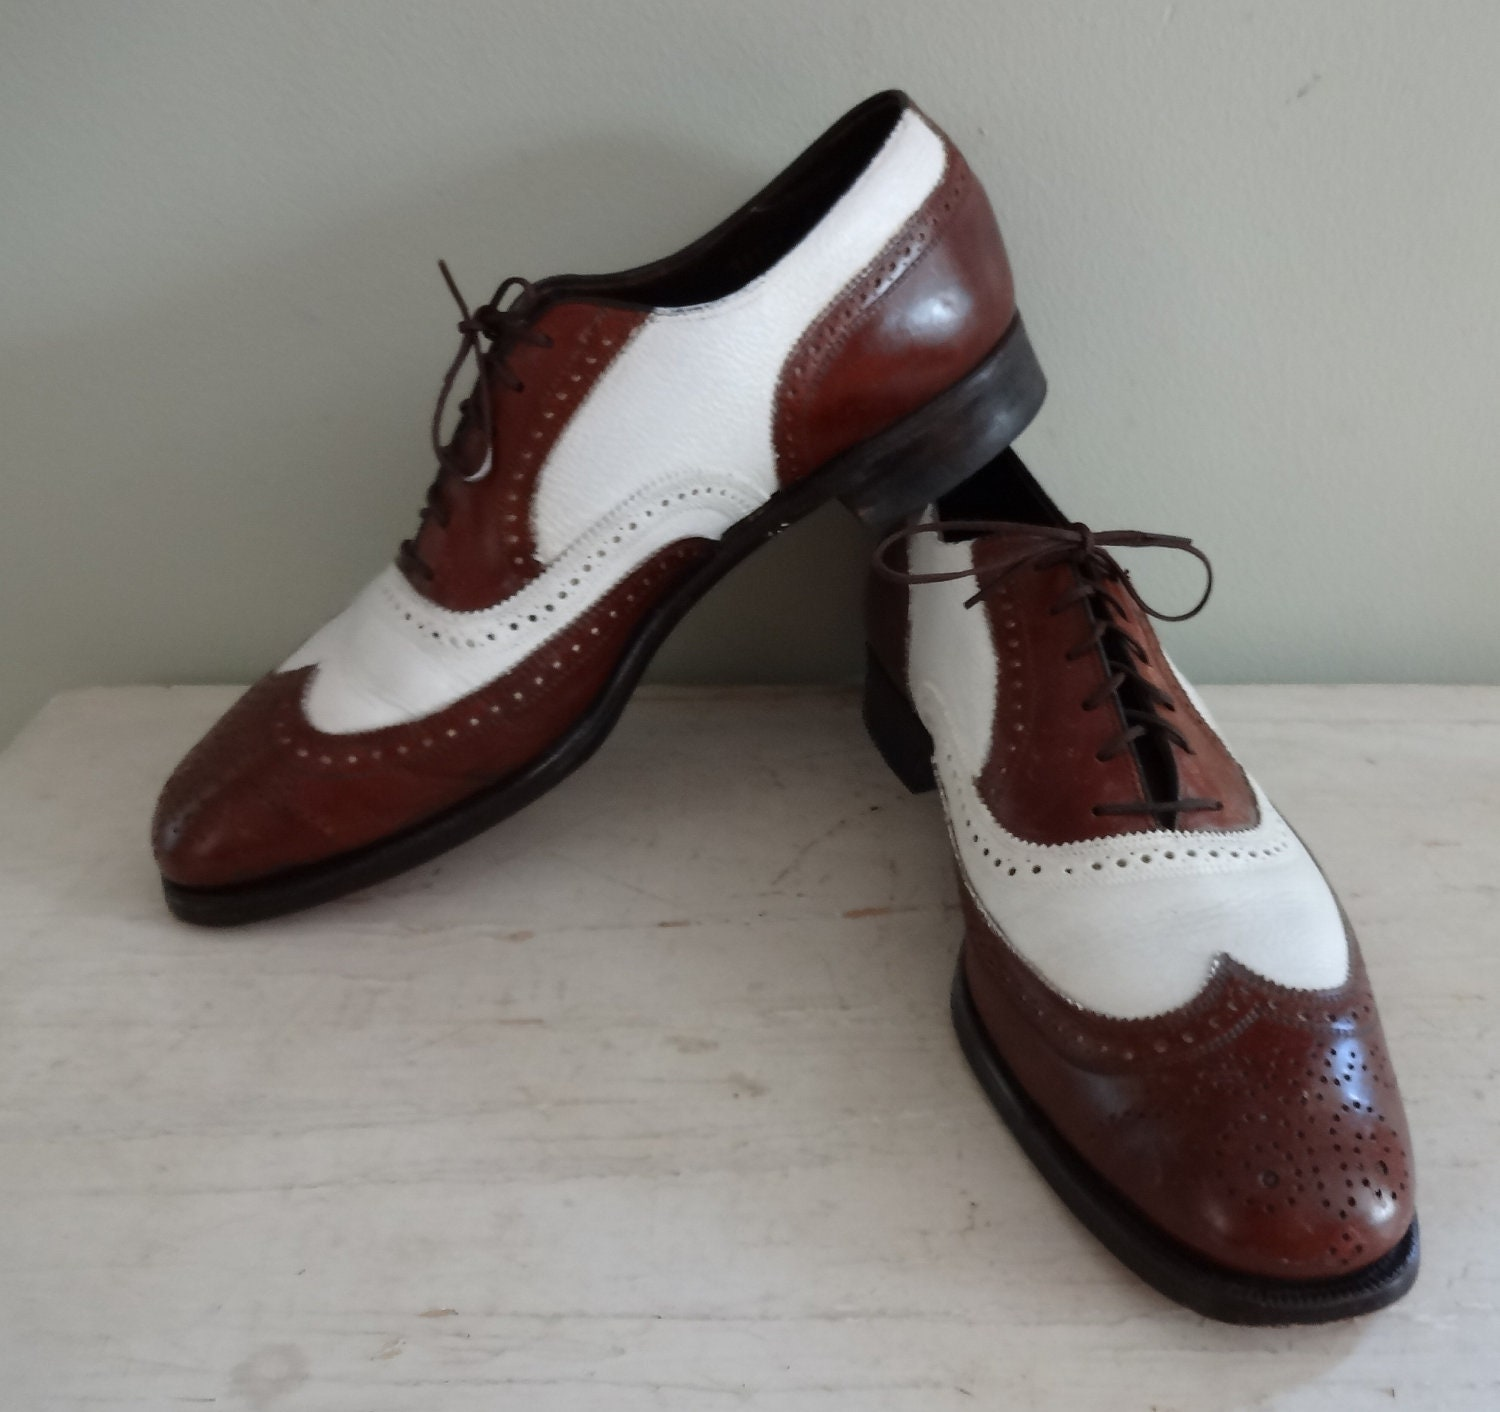 Properly care for your footwear and extend the life of your best shoes with the Cedar Shoe Tree. It features a sculpted toe and cl osely mirrors the natural shape of a man's foot. Simply insert one of the shoe trees into the toe of a men's leather or fabric shoe to help ensure the shape will be maintained.